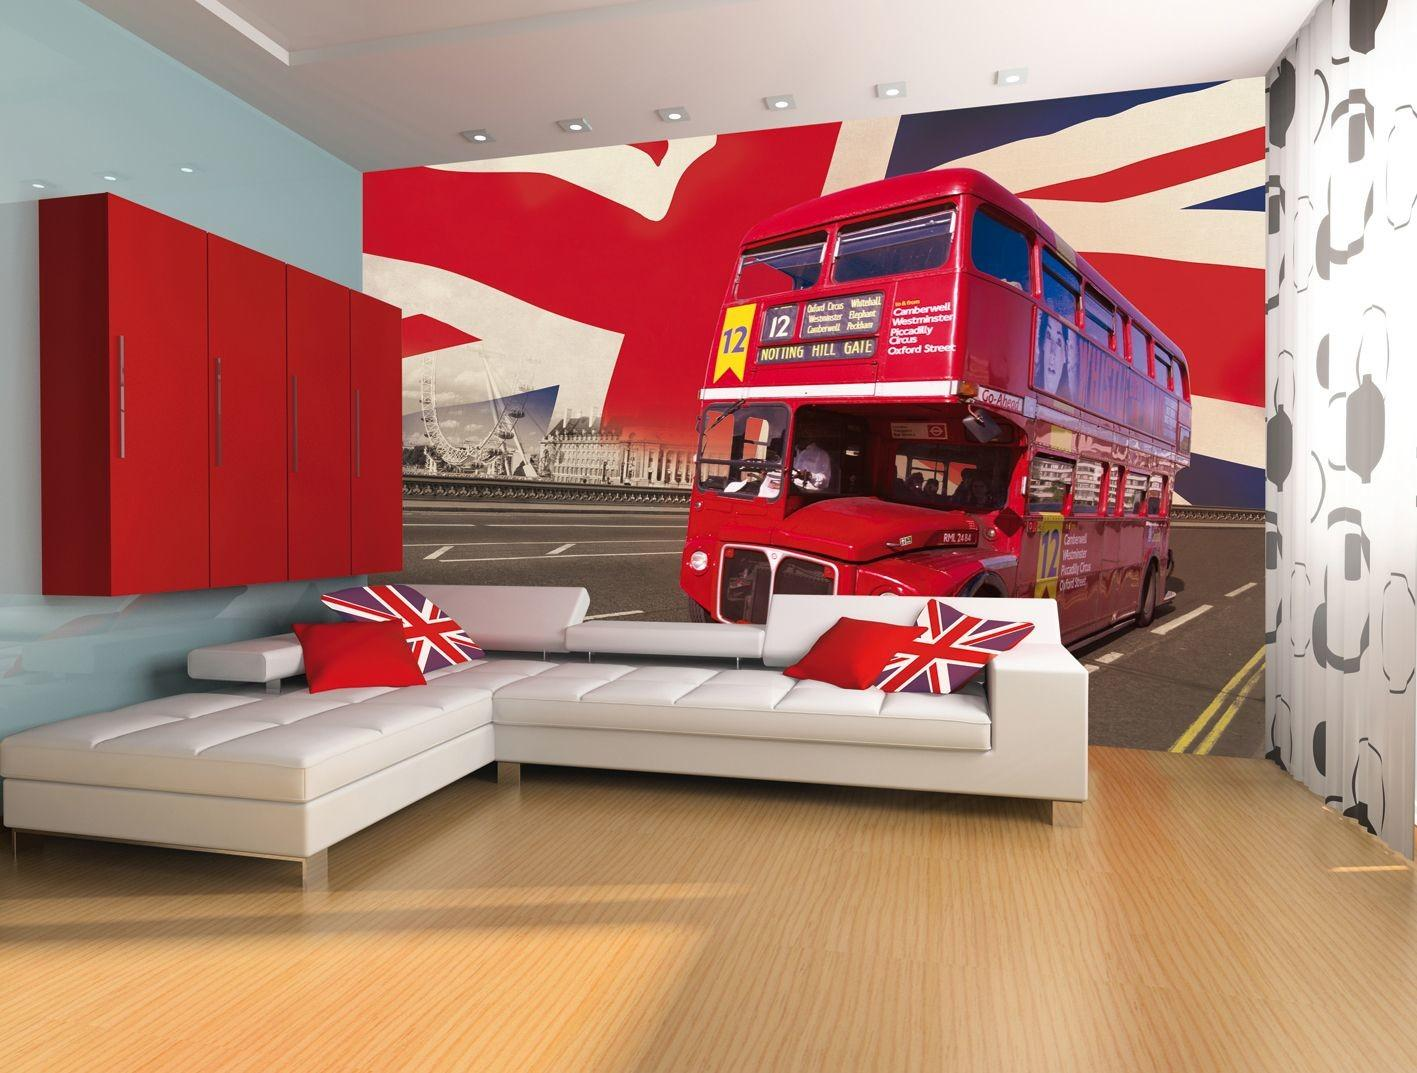 Giant Wall Mural London Bus Union Jack Theme Design